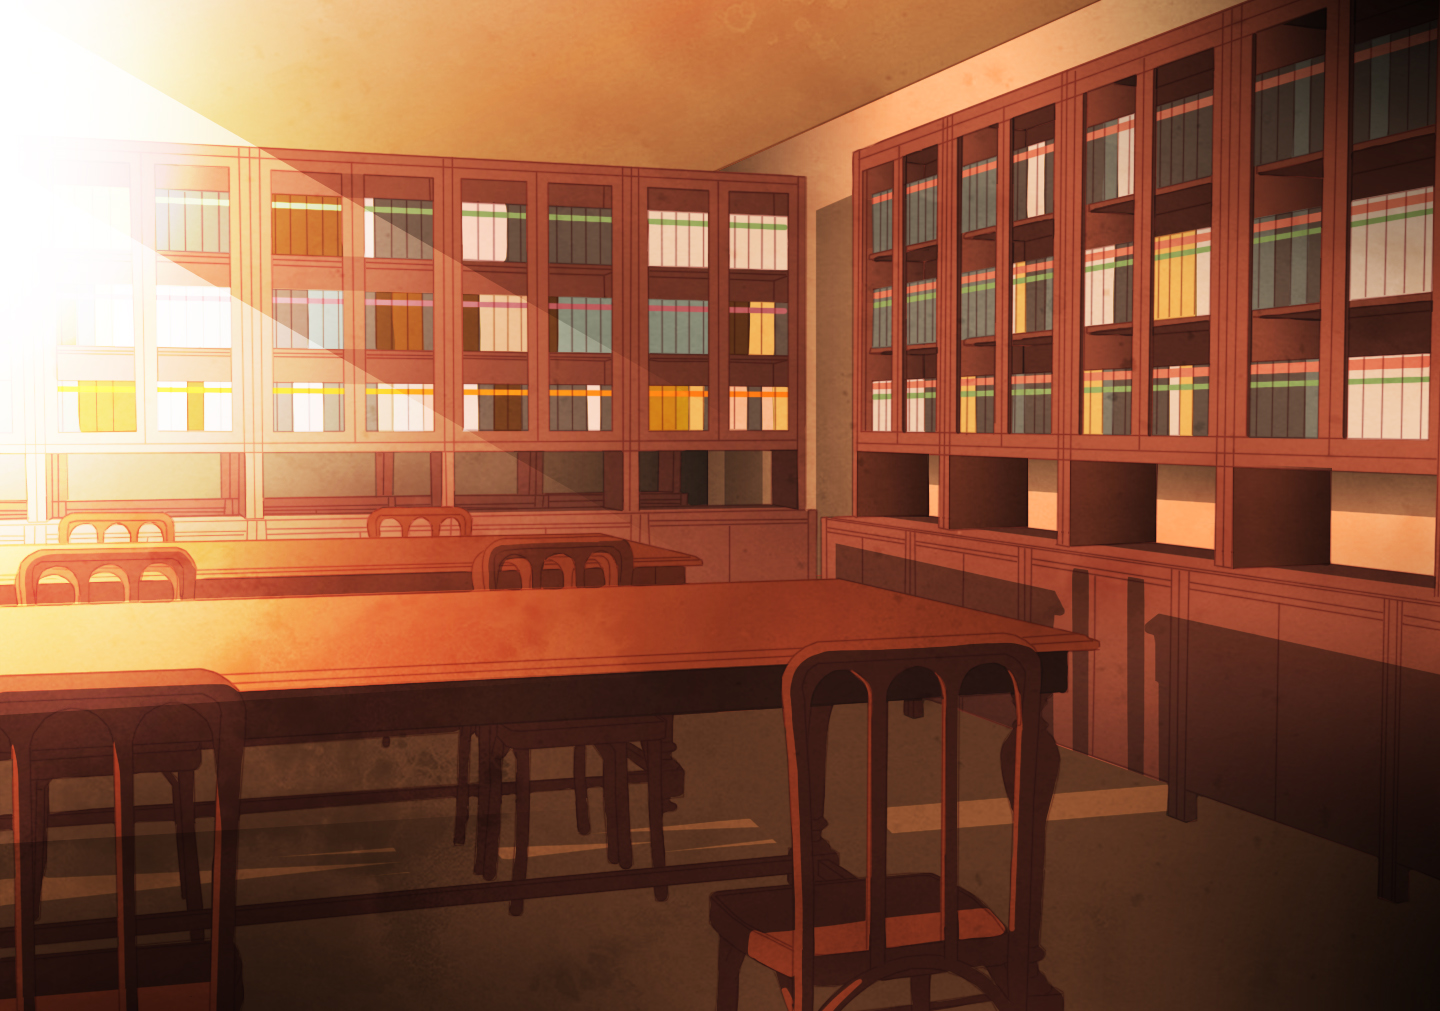 Background 4: Library